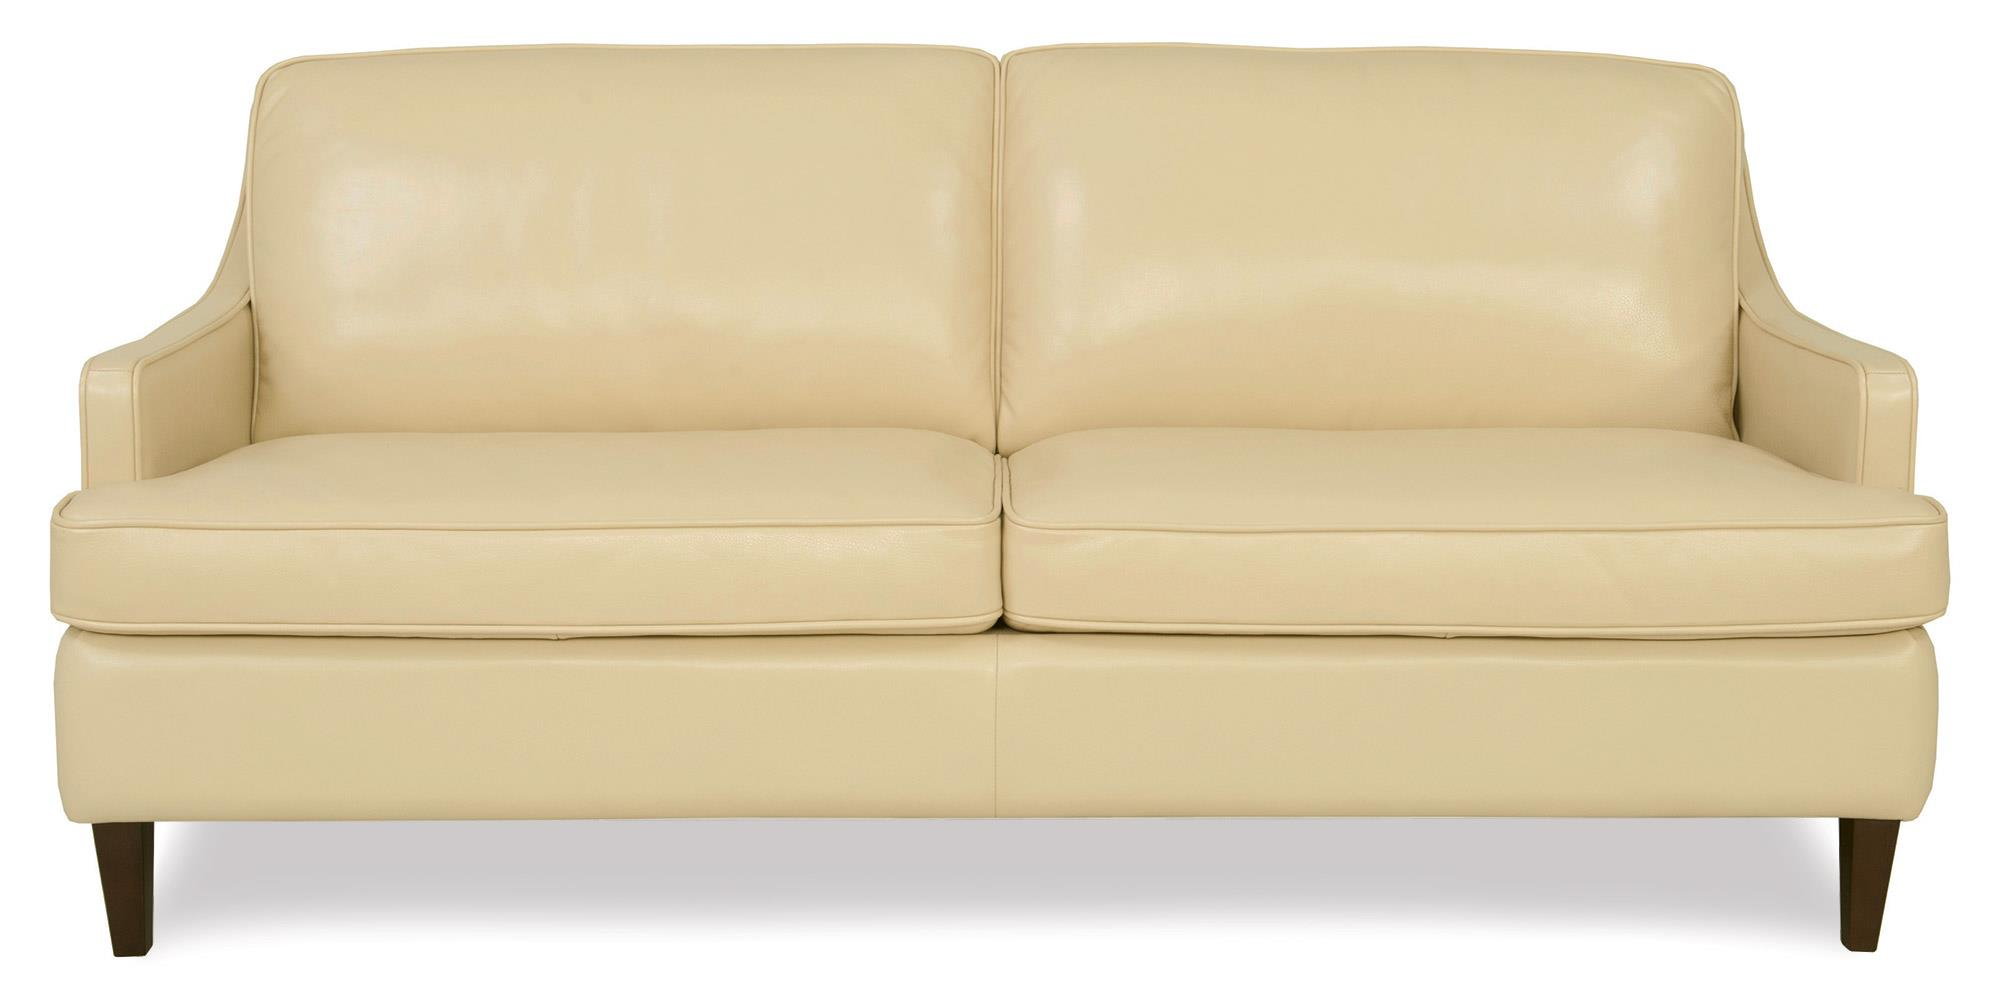 Loft Leather Ally Leather Sofa - Item Number: 8658-30